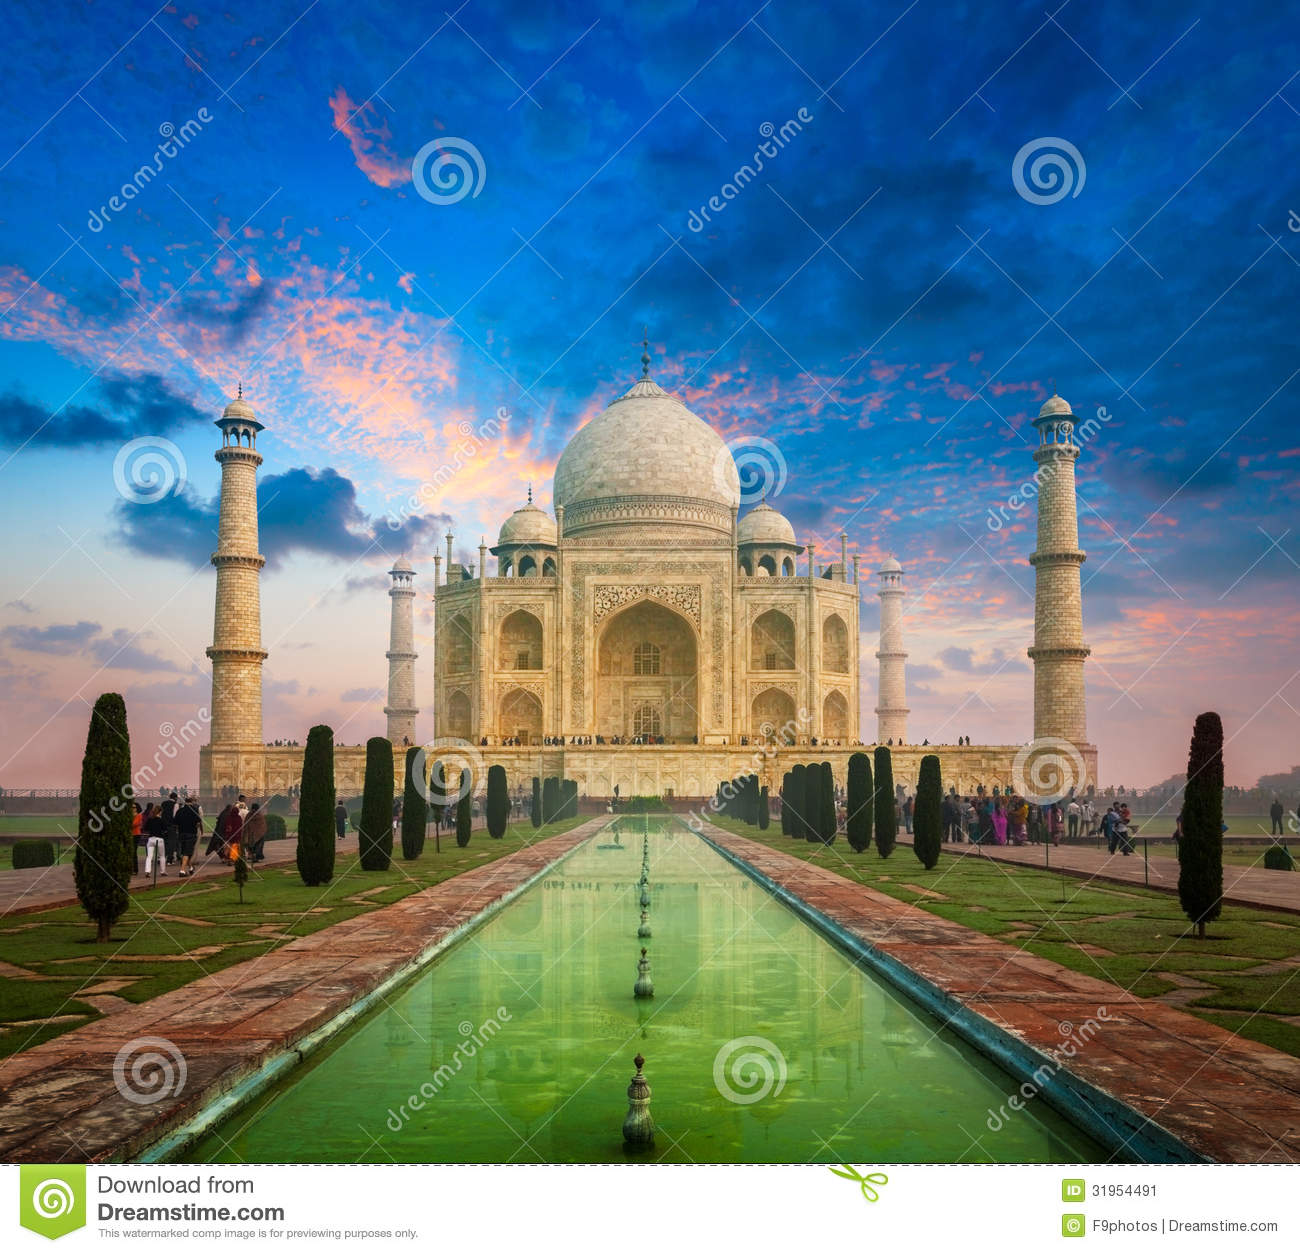 Taj Mahal On Sunrise Sunset Agra India Stock Image Image Of Historical Landmark 31954491